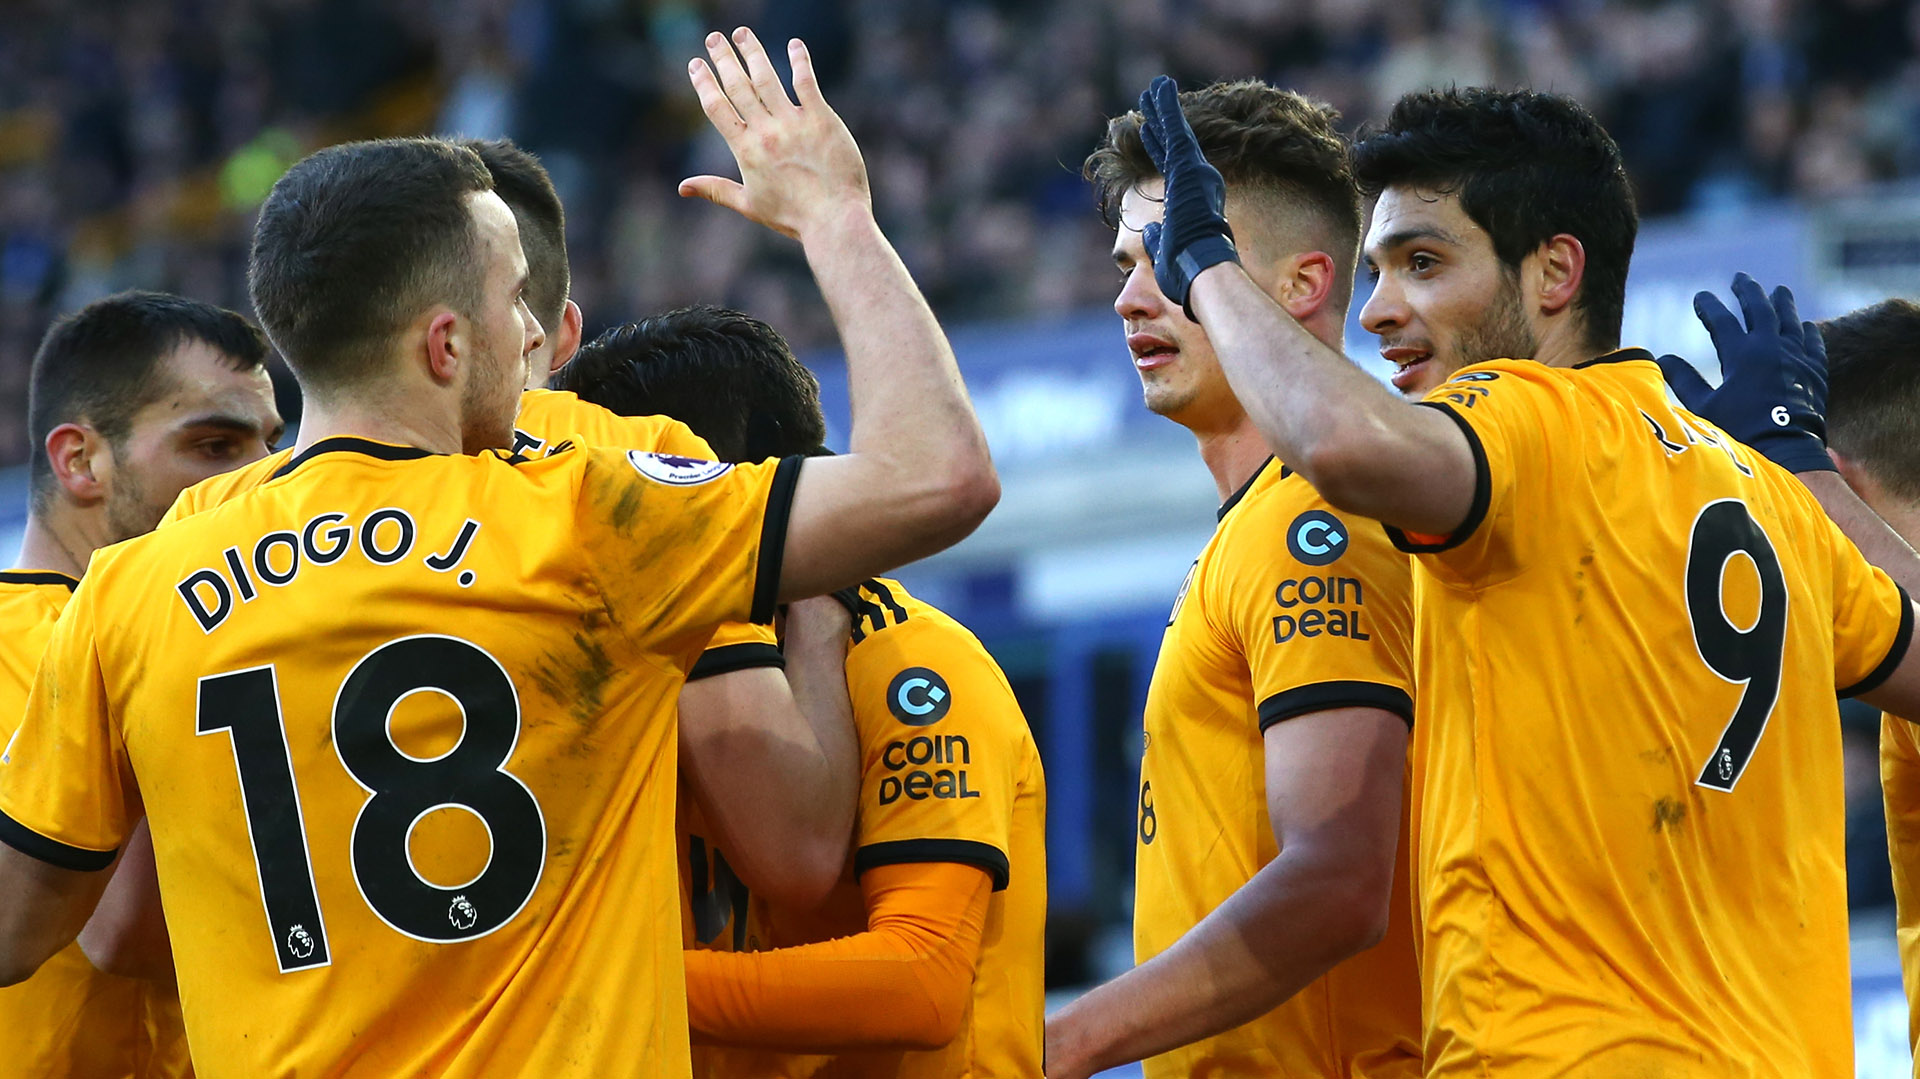 Nuno Espirito Santo criticises Wolves players after narrow win over Shrewsbury